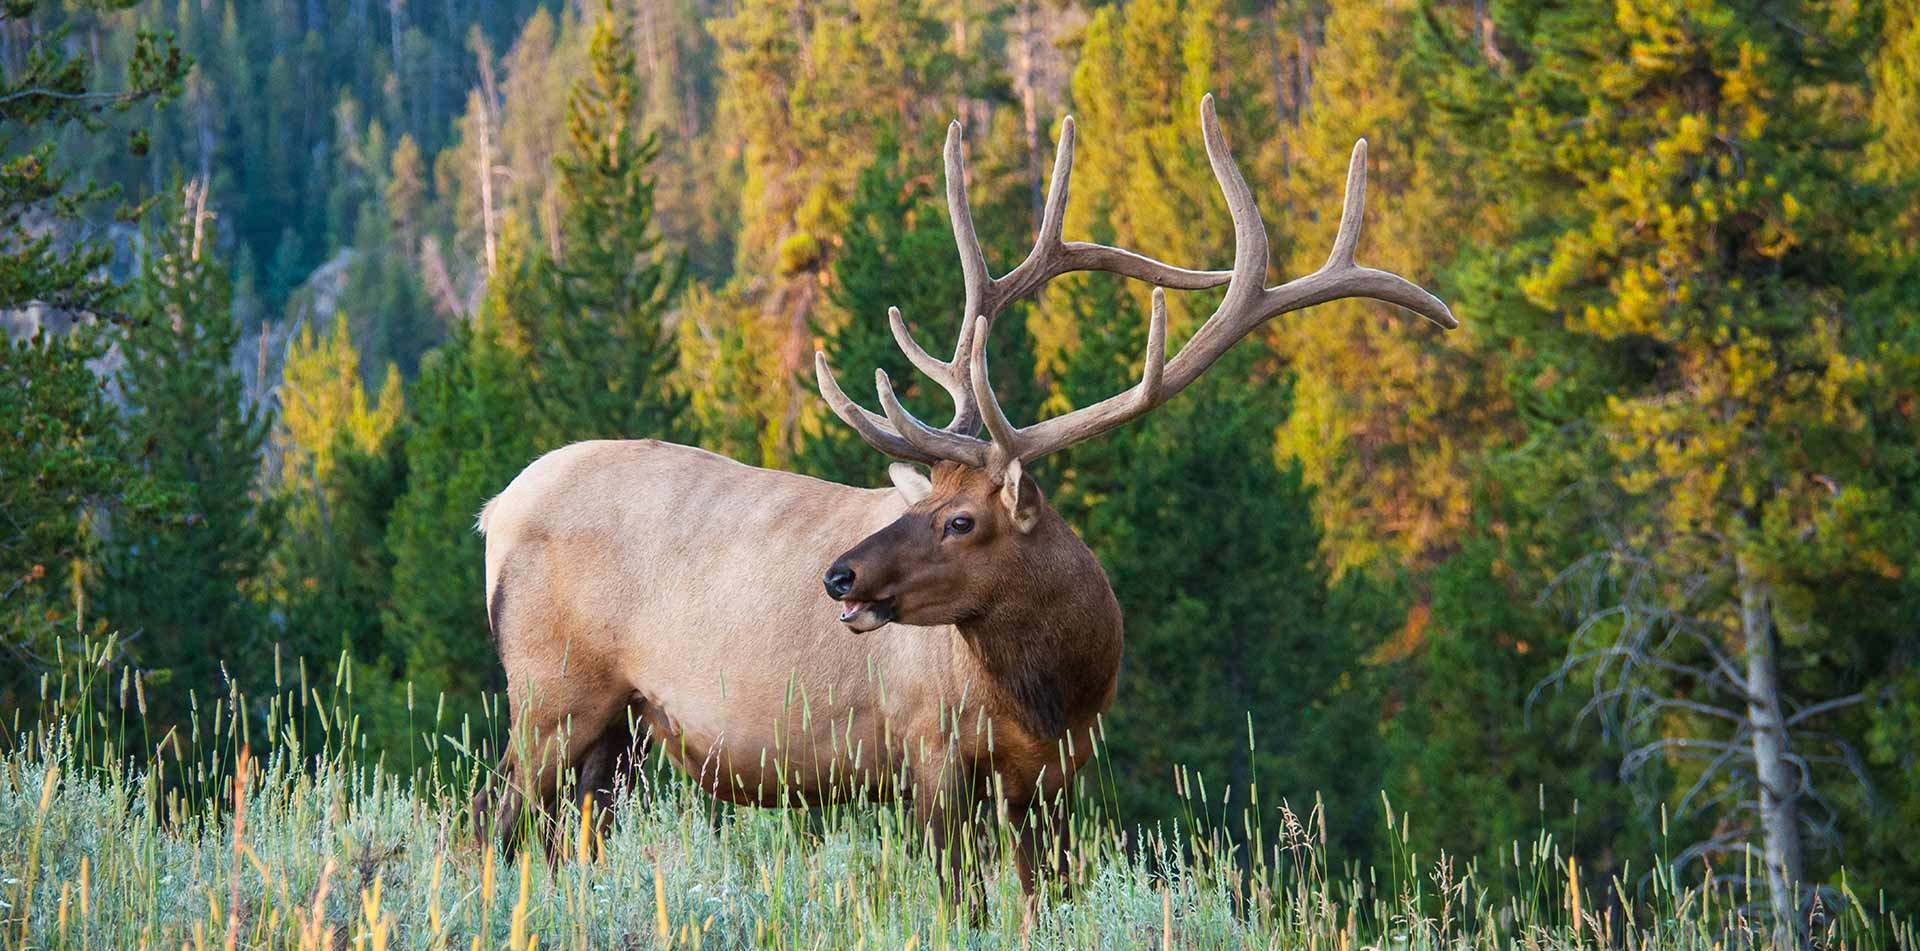 North America United States USA Montana elk wildlife nature field trees outdoors - luxury vacation destinations